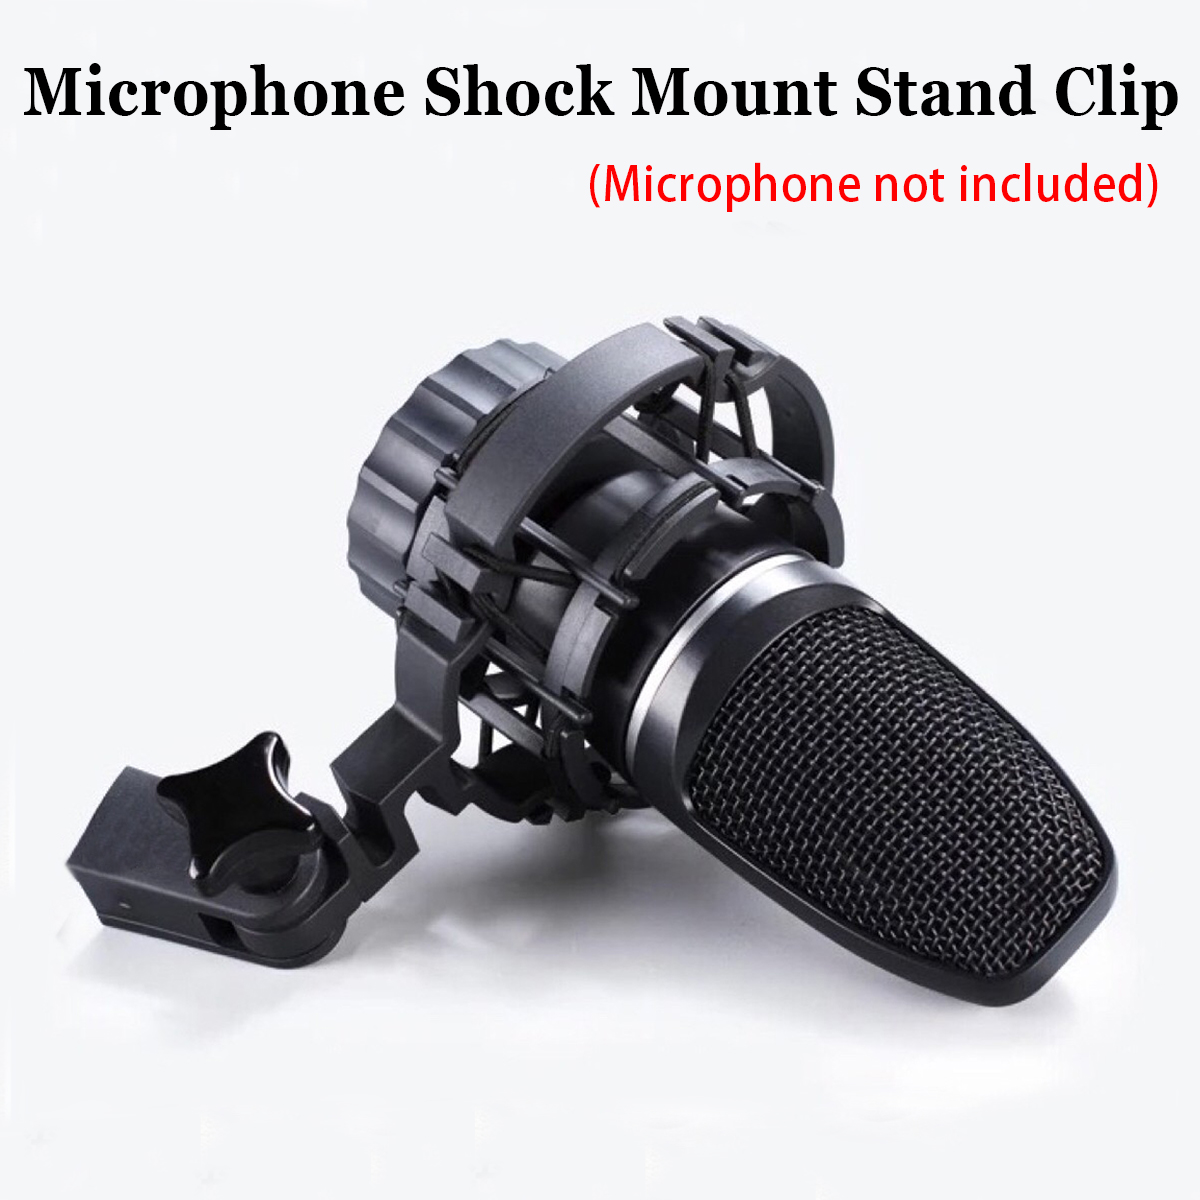 Microphone Shock Mount Stand Clip for AKG H 85 C3000 C2000 C4000 C414 Anti vibration Professional